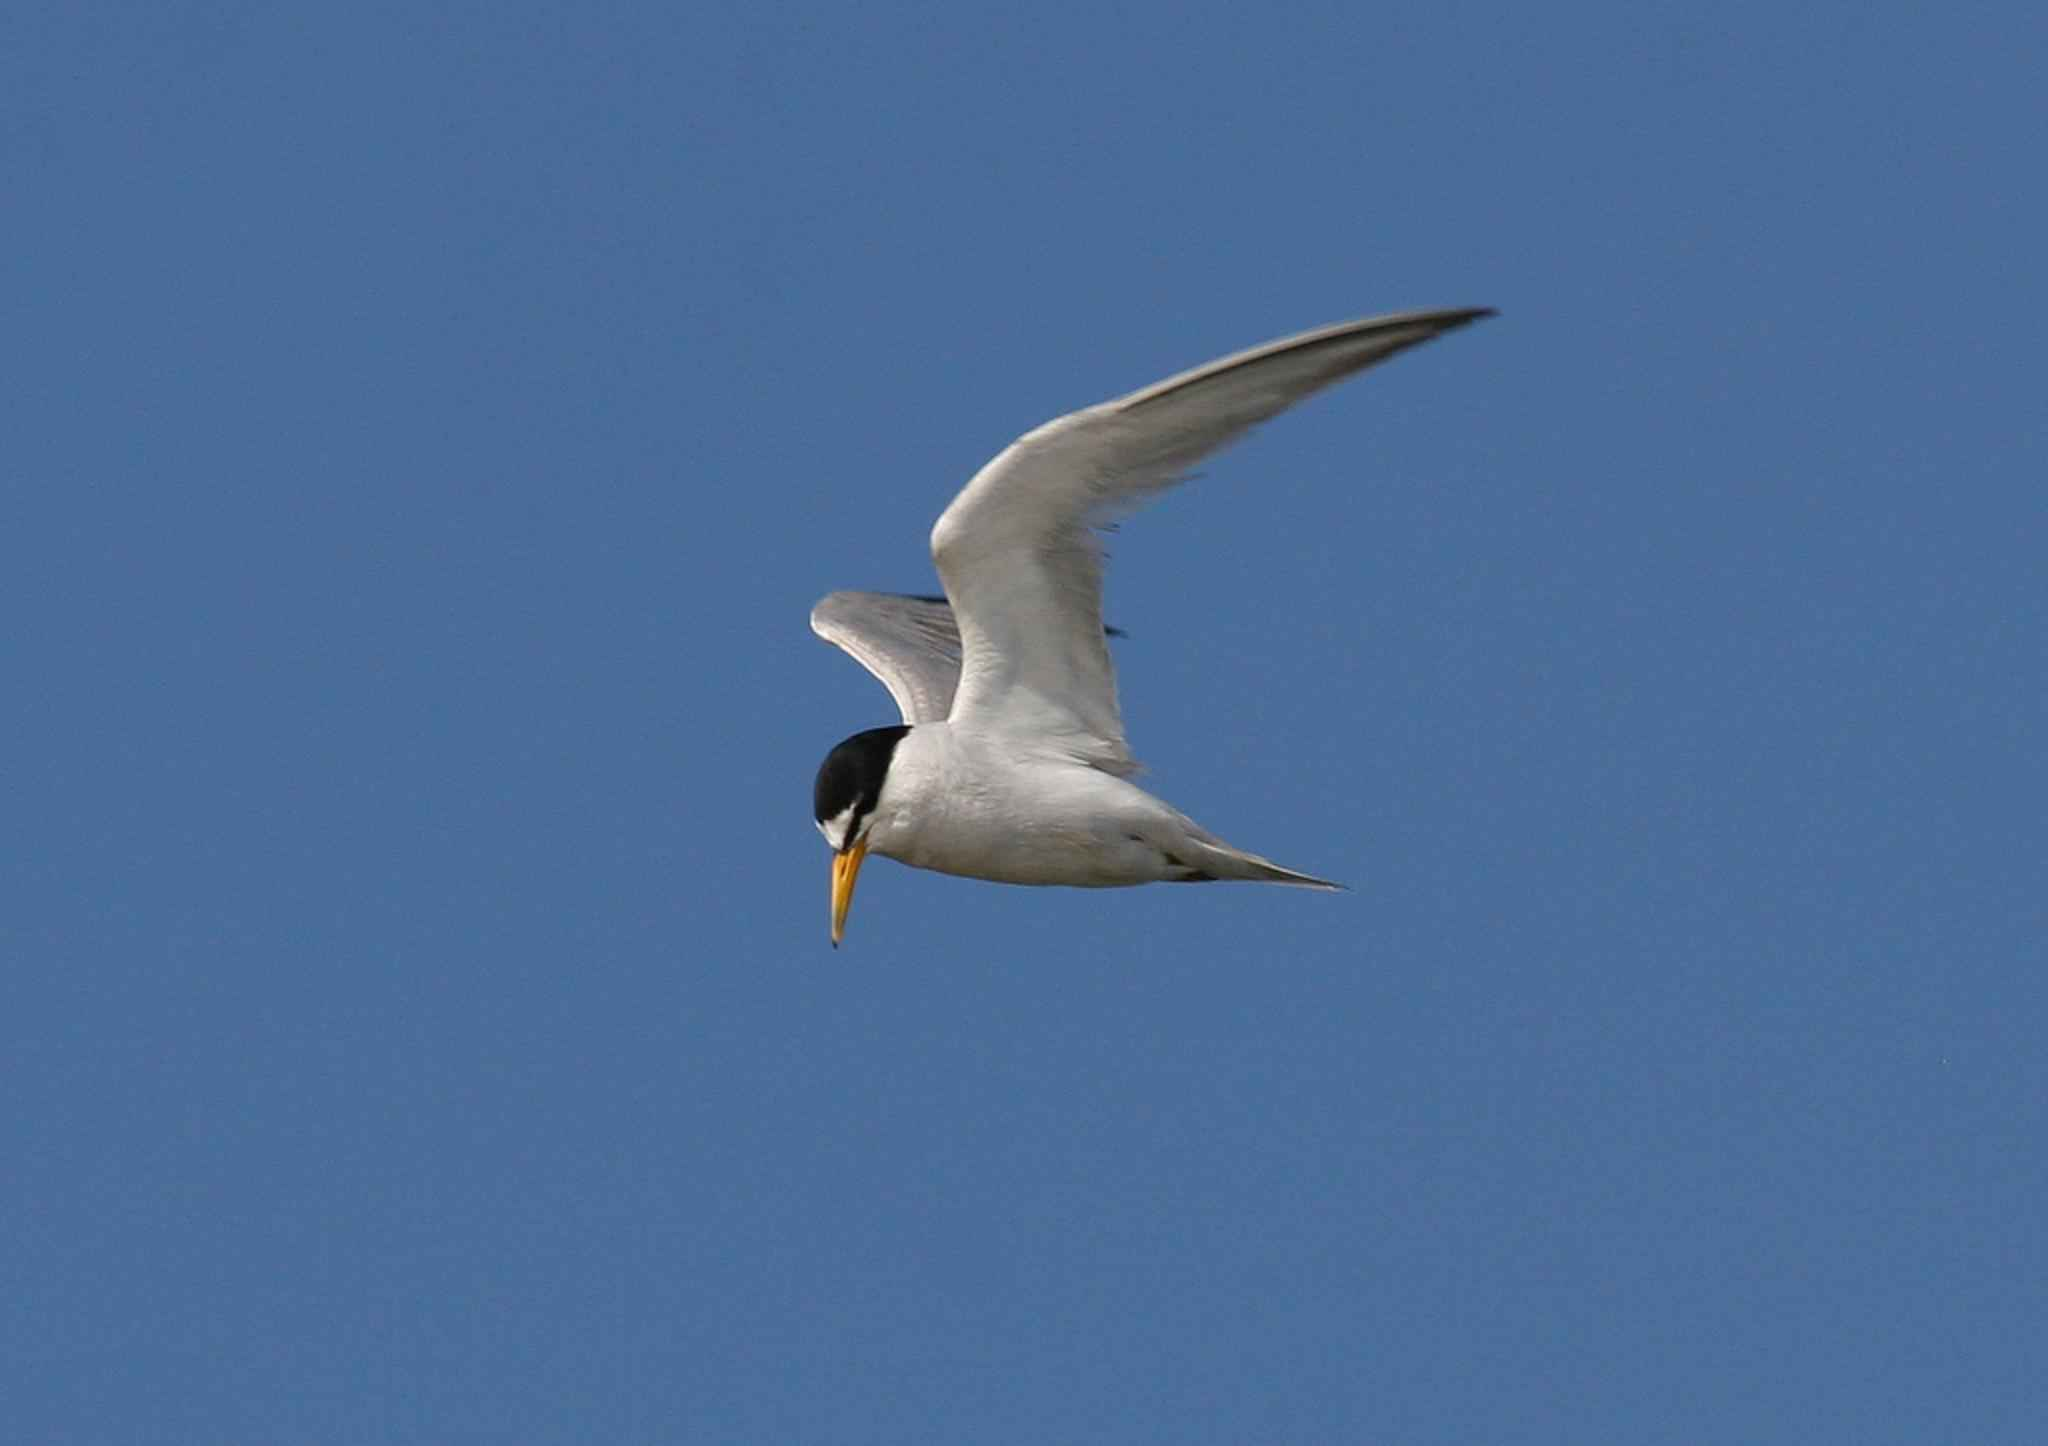 least tern free images public domain images